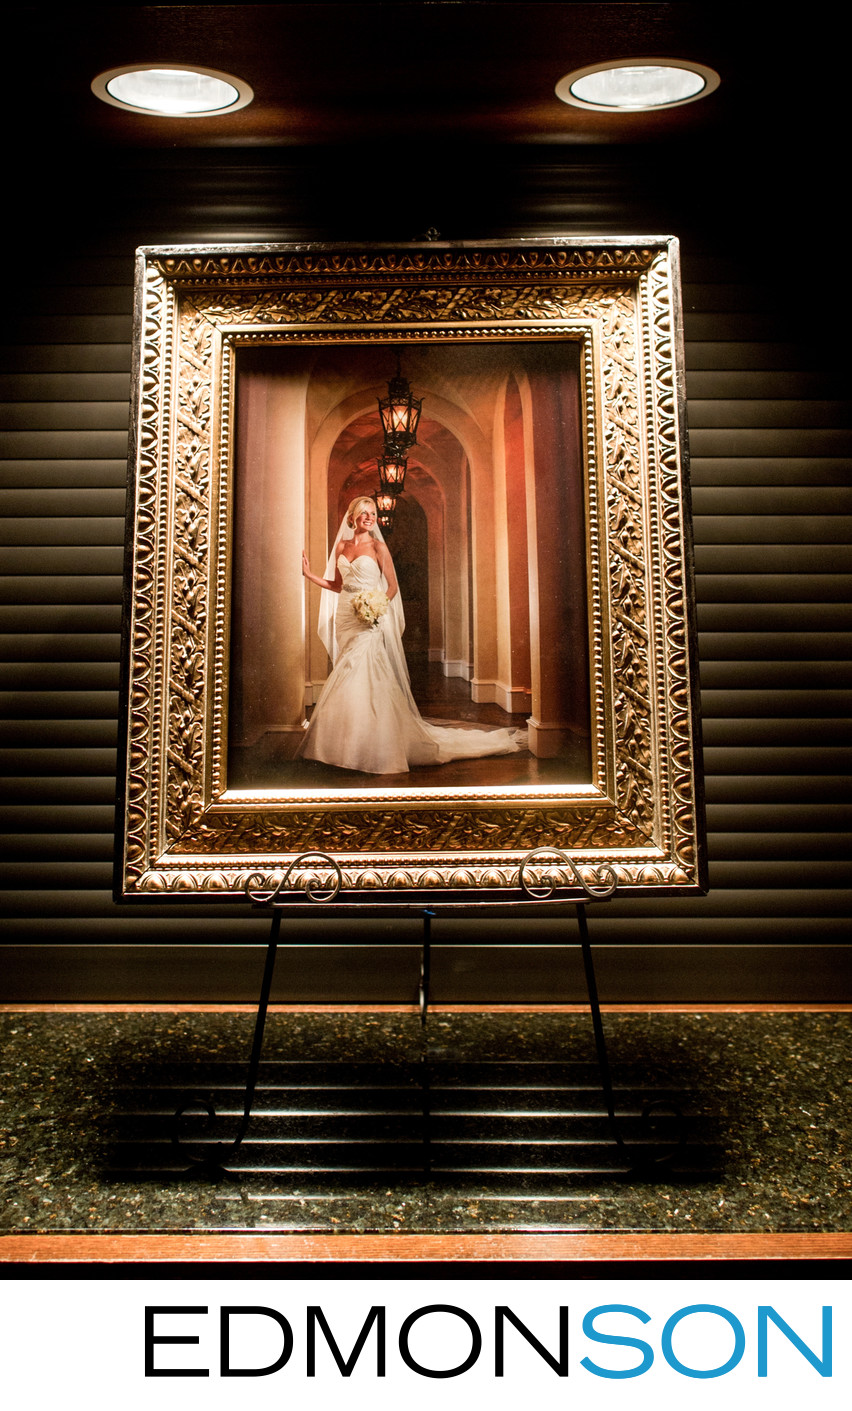 Bridal Portrait On Display At Dallas Wedding Reception